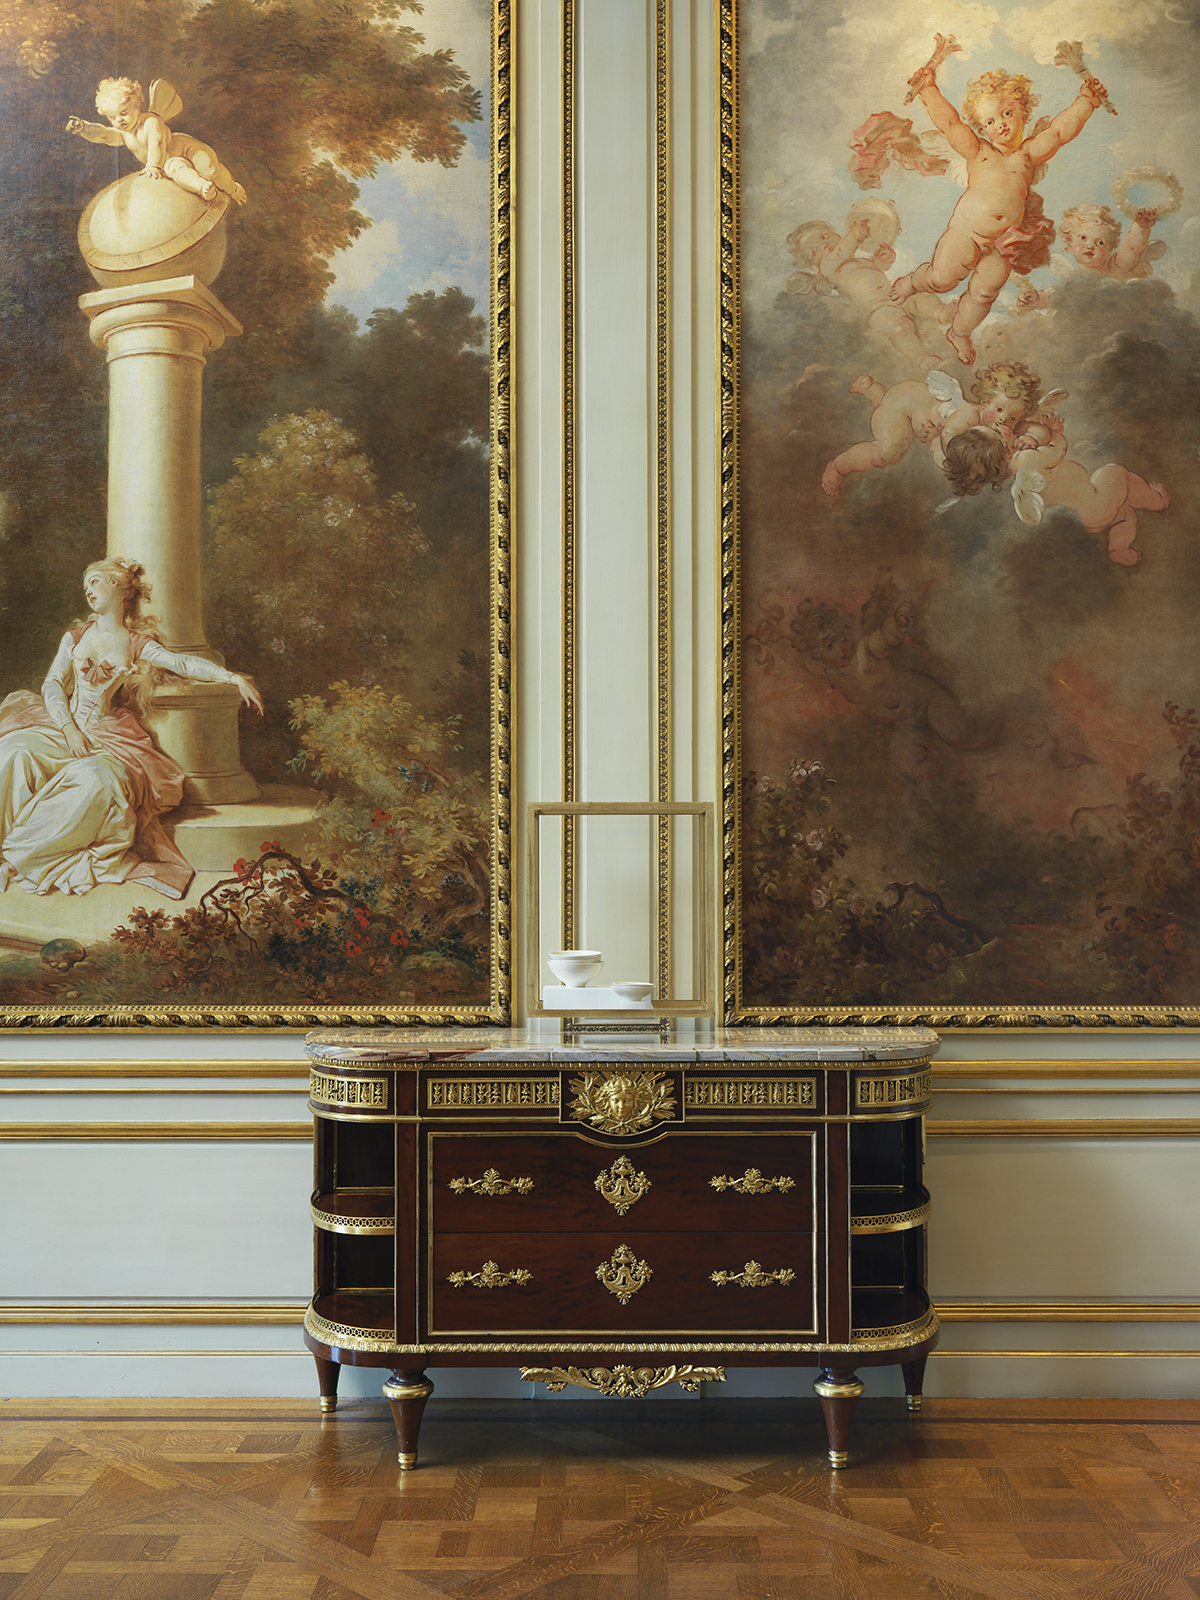 Fragonard-Roon-view-02-without-chair.jpg